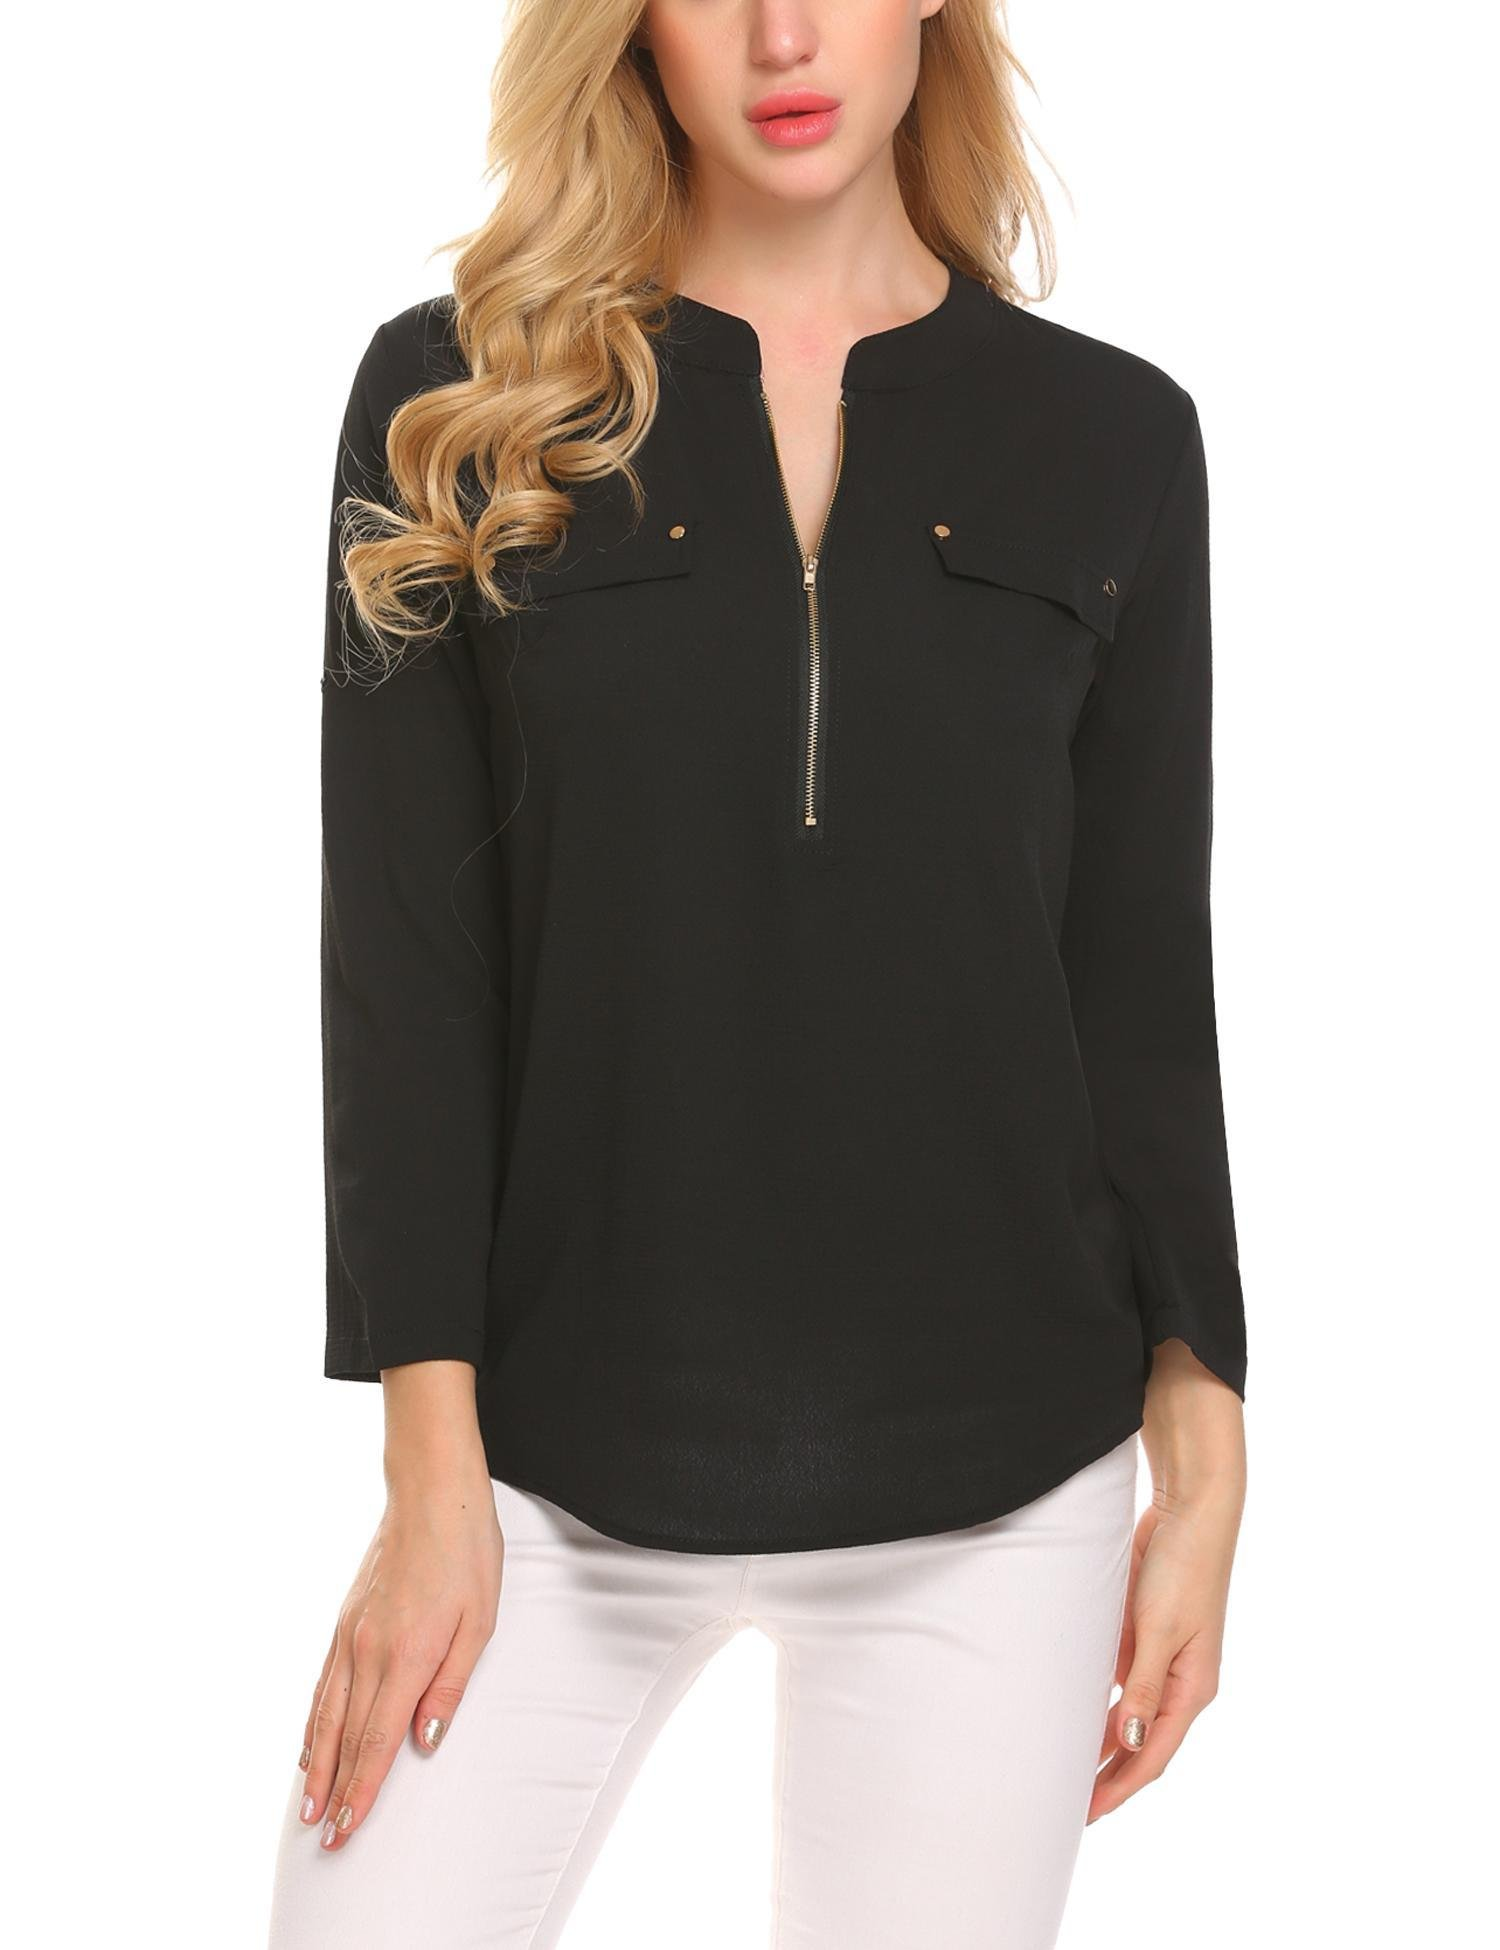 ANGVNS Women Ruched Sleeve Flower Printed Chiffon Blouse, Black 3, M